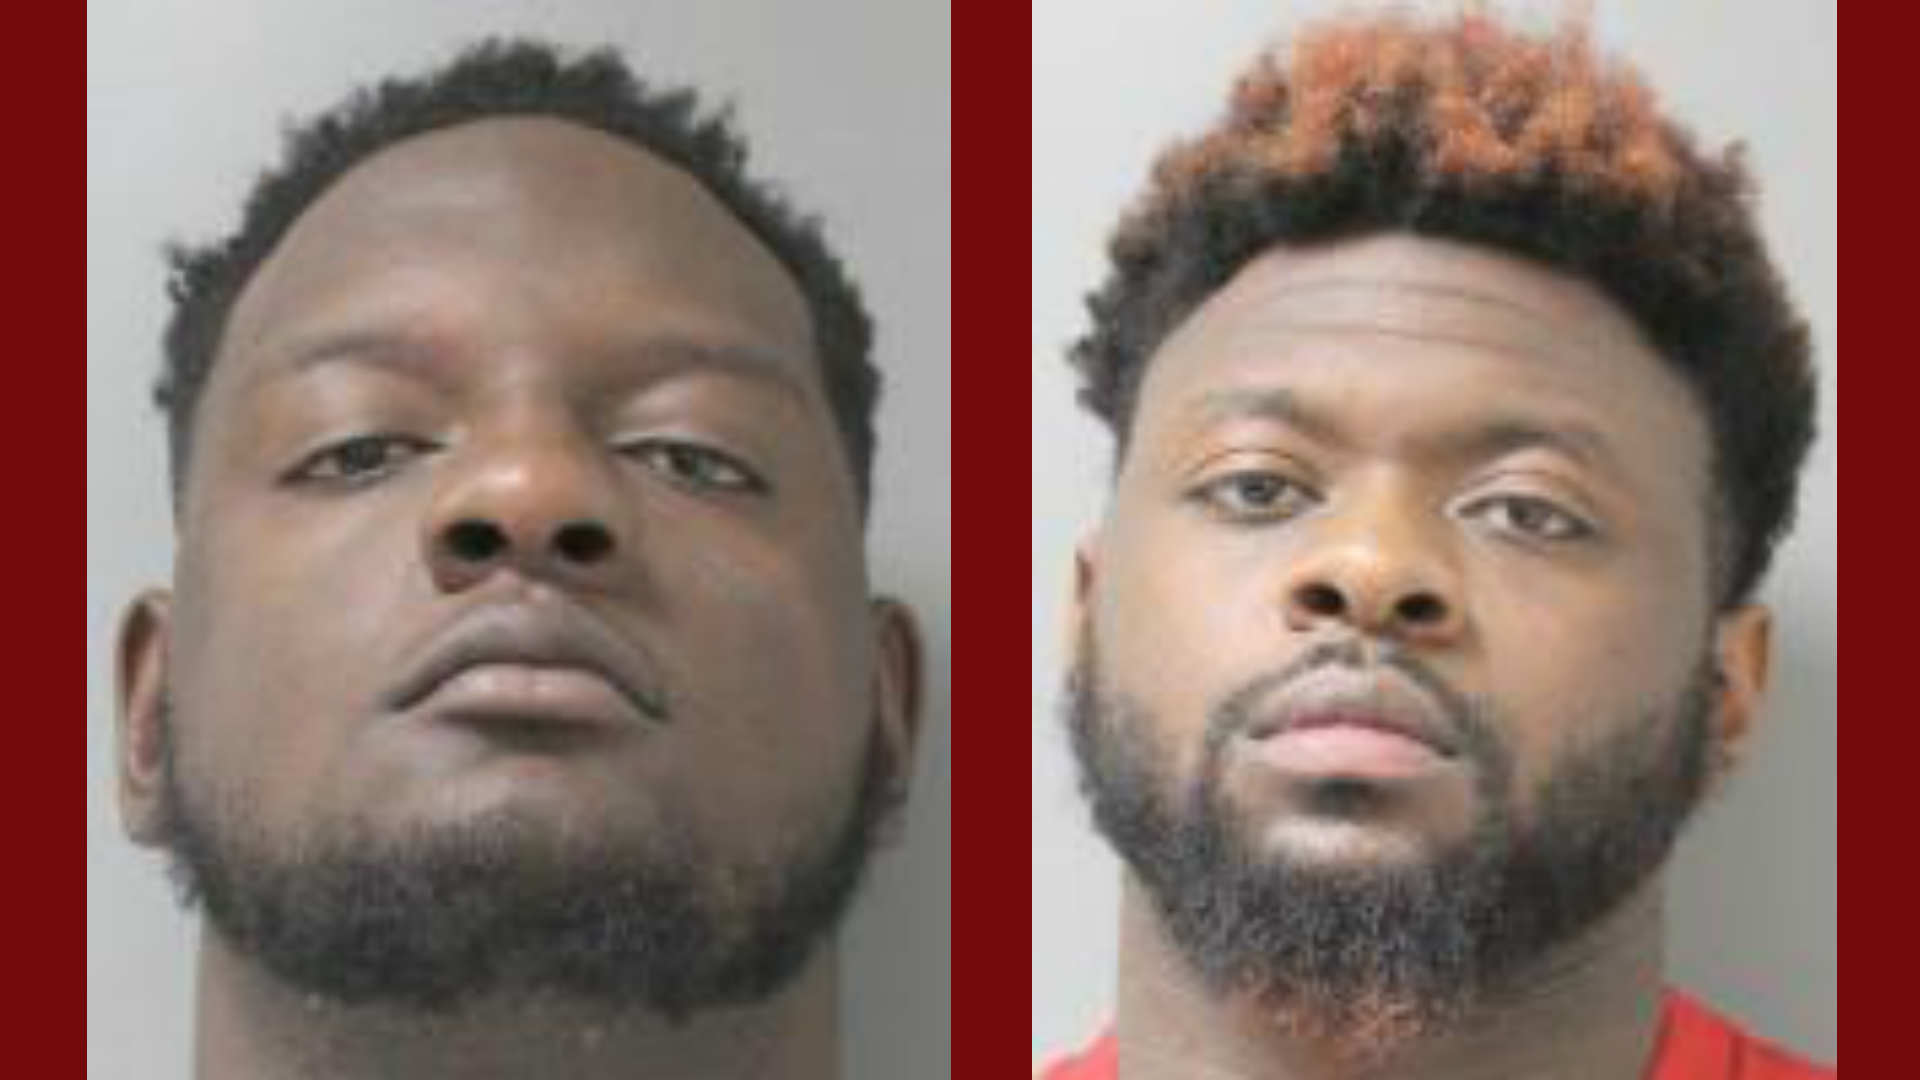 DA drops charges against Alabama football players arrested in Louisiana